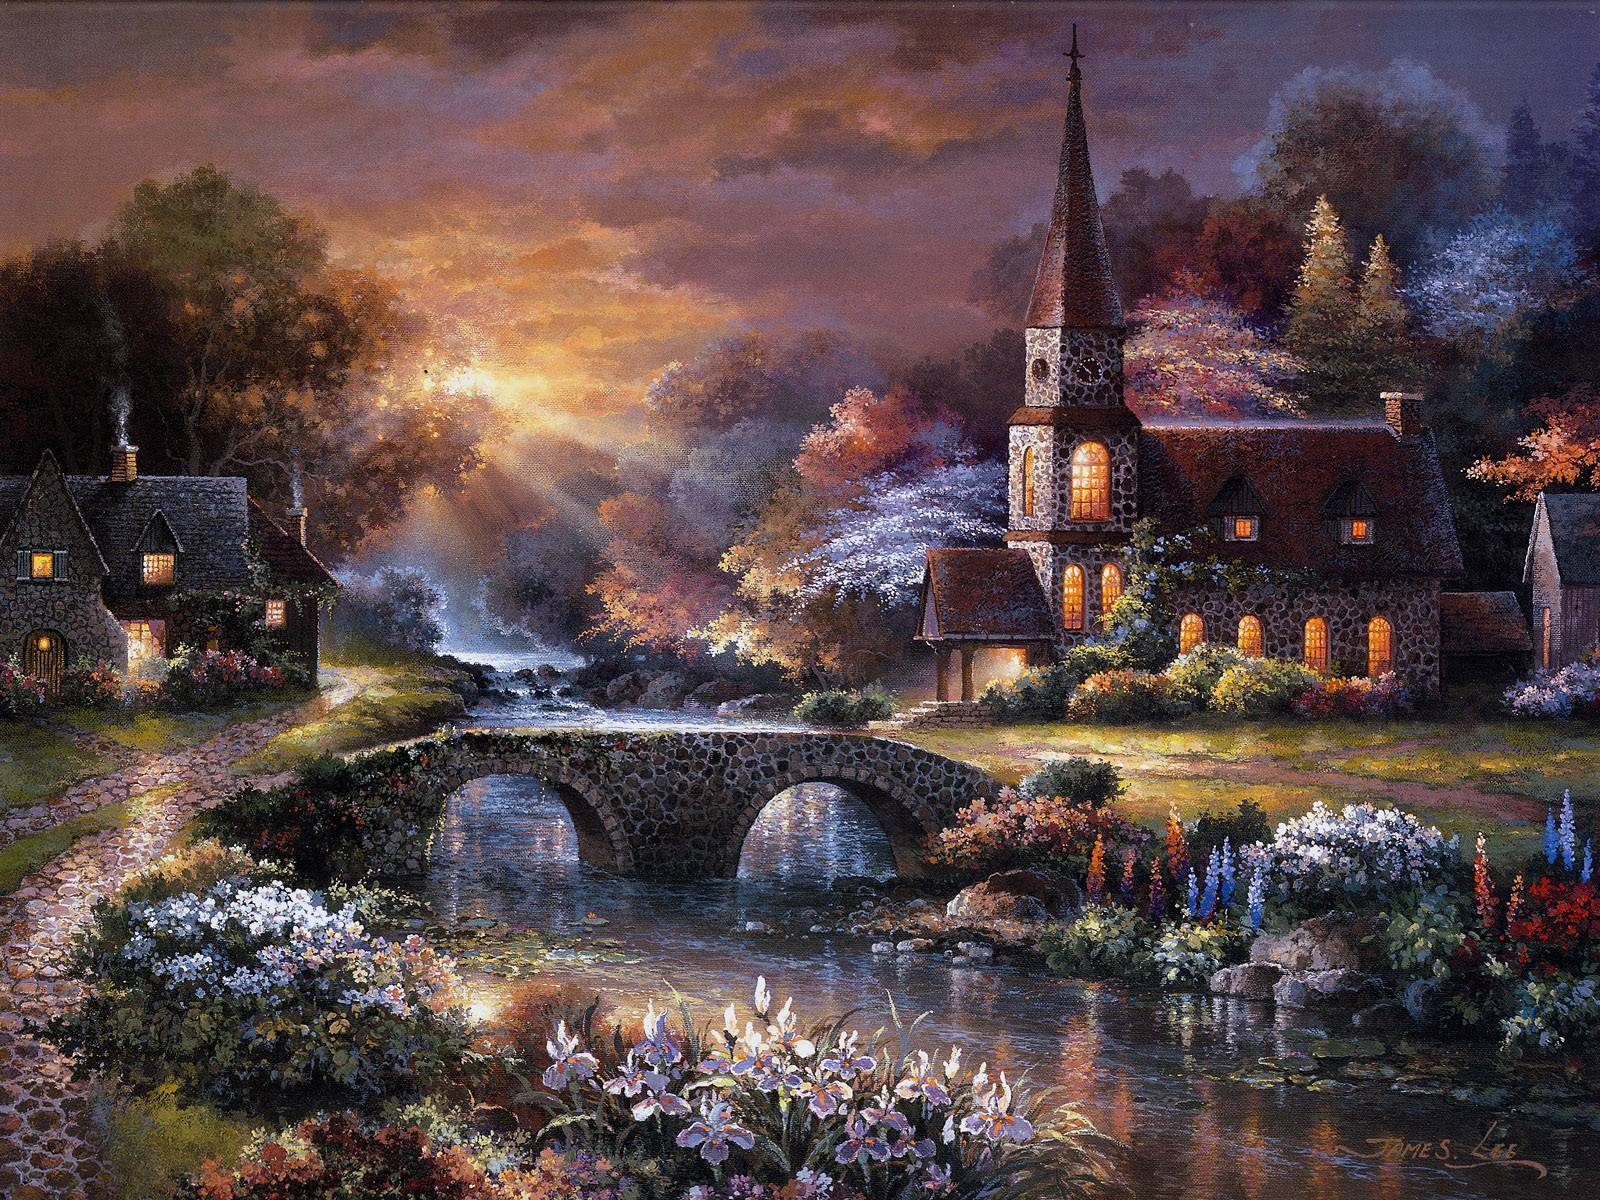 peaceful reflections james lee wallpaper image